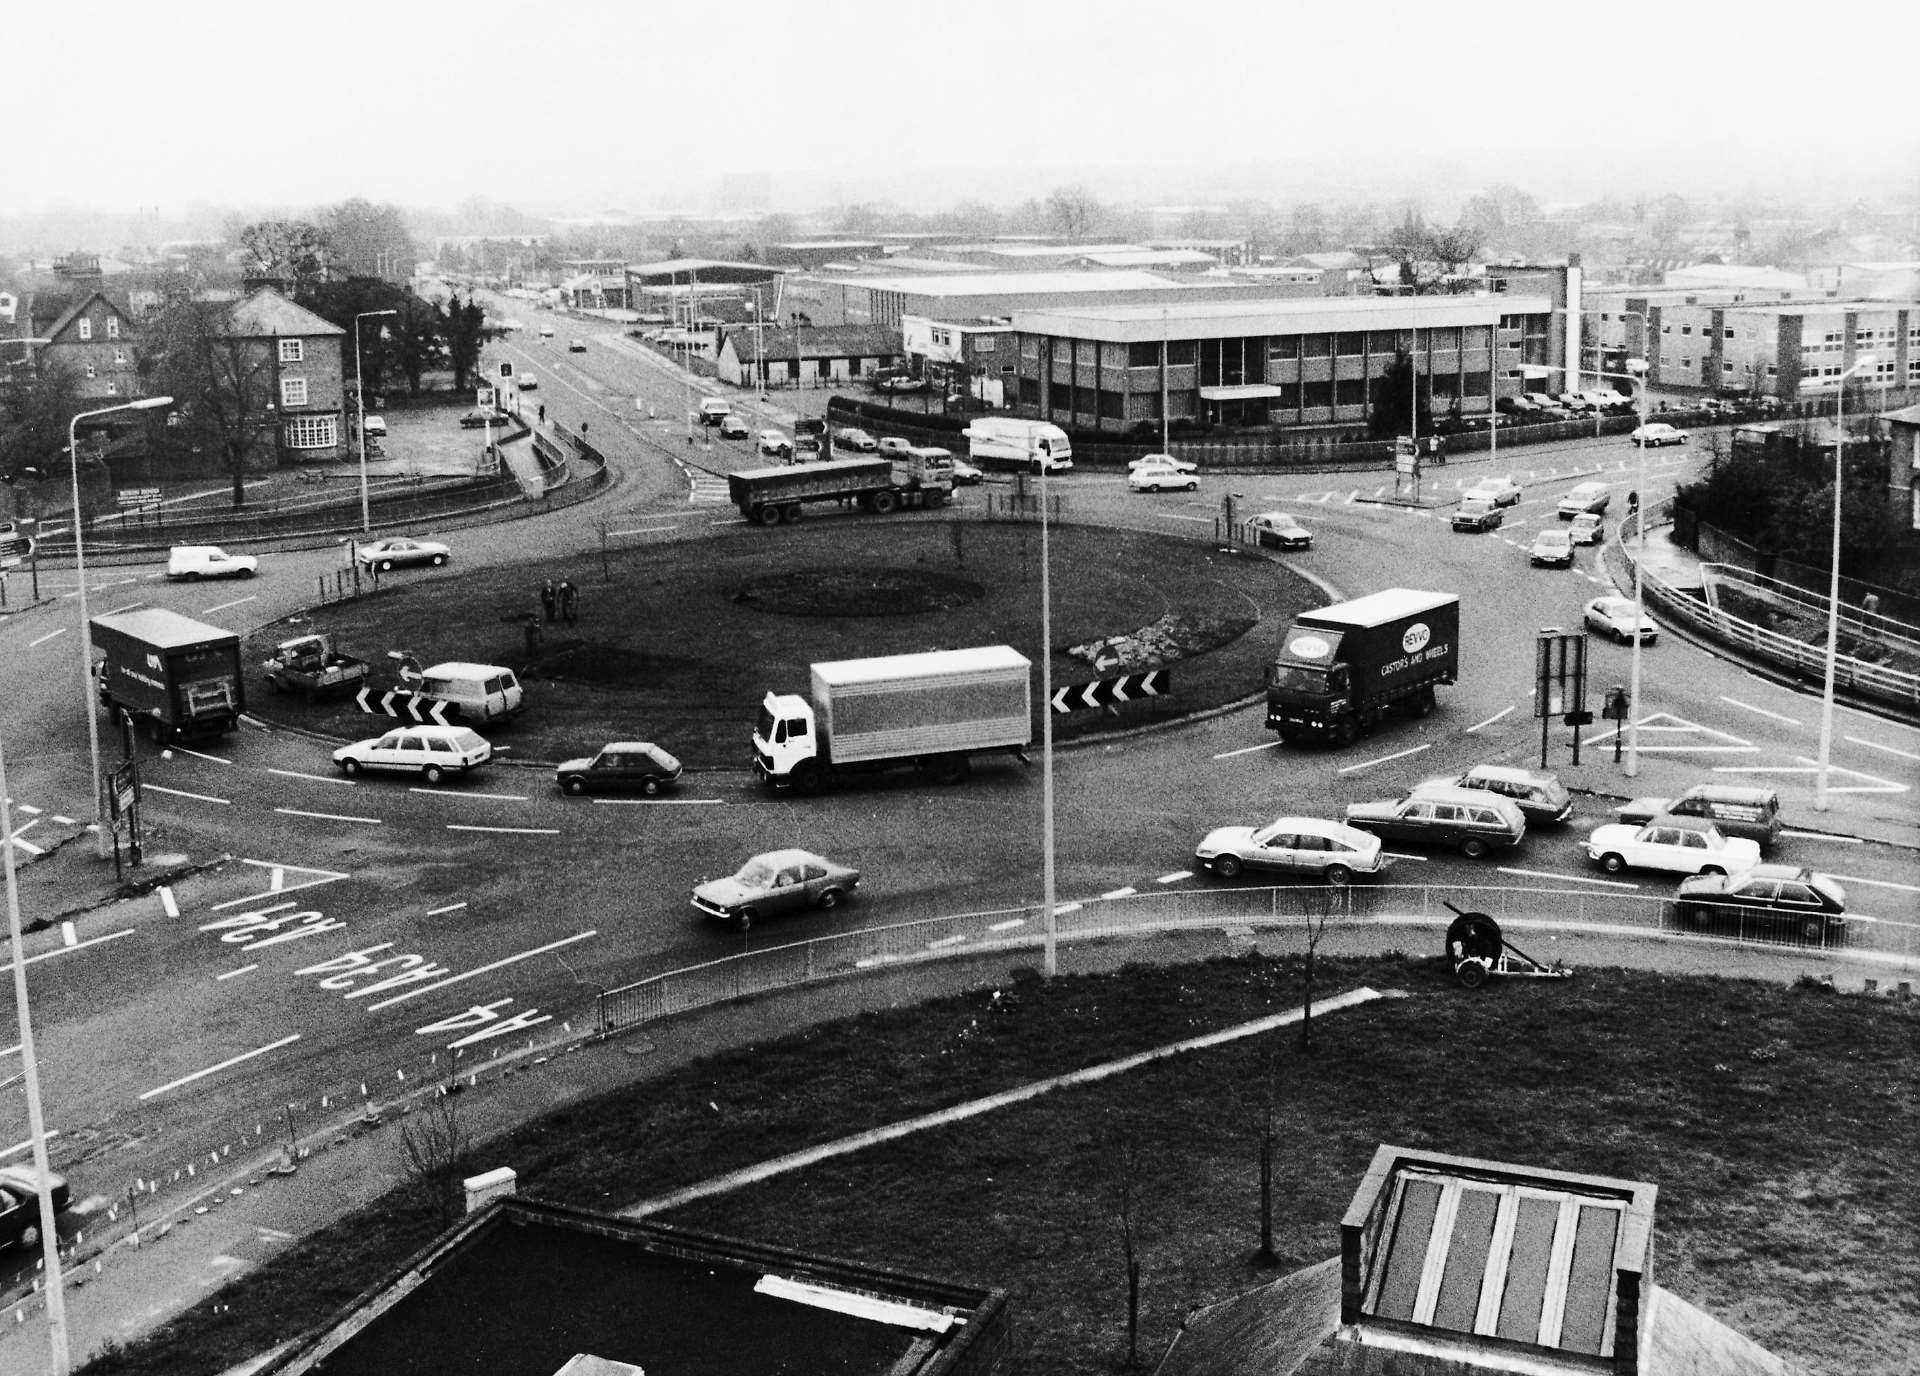 The Robin Hood roundabout in Newbury